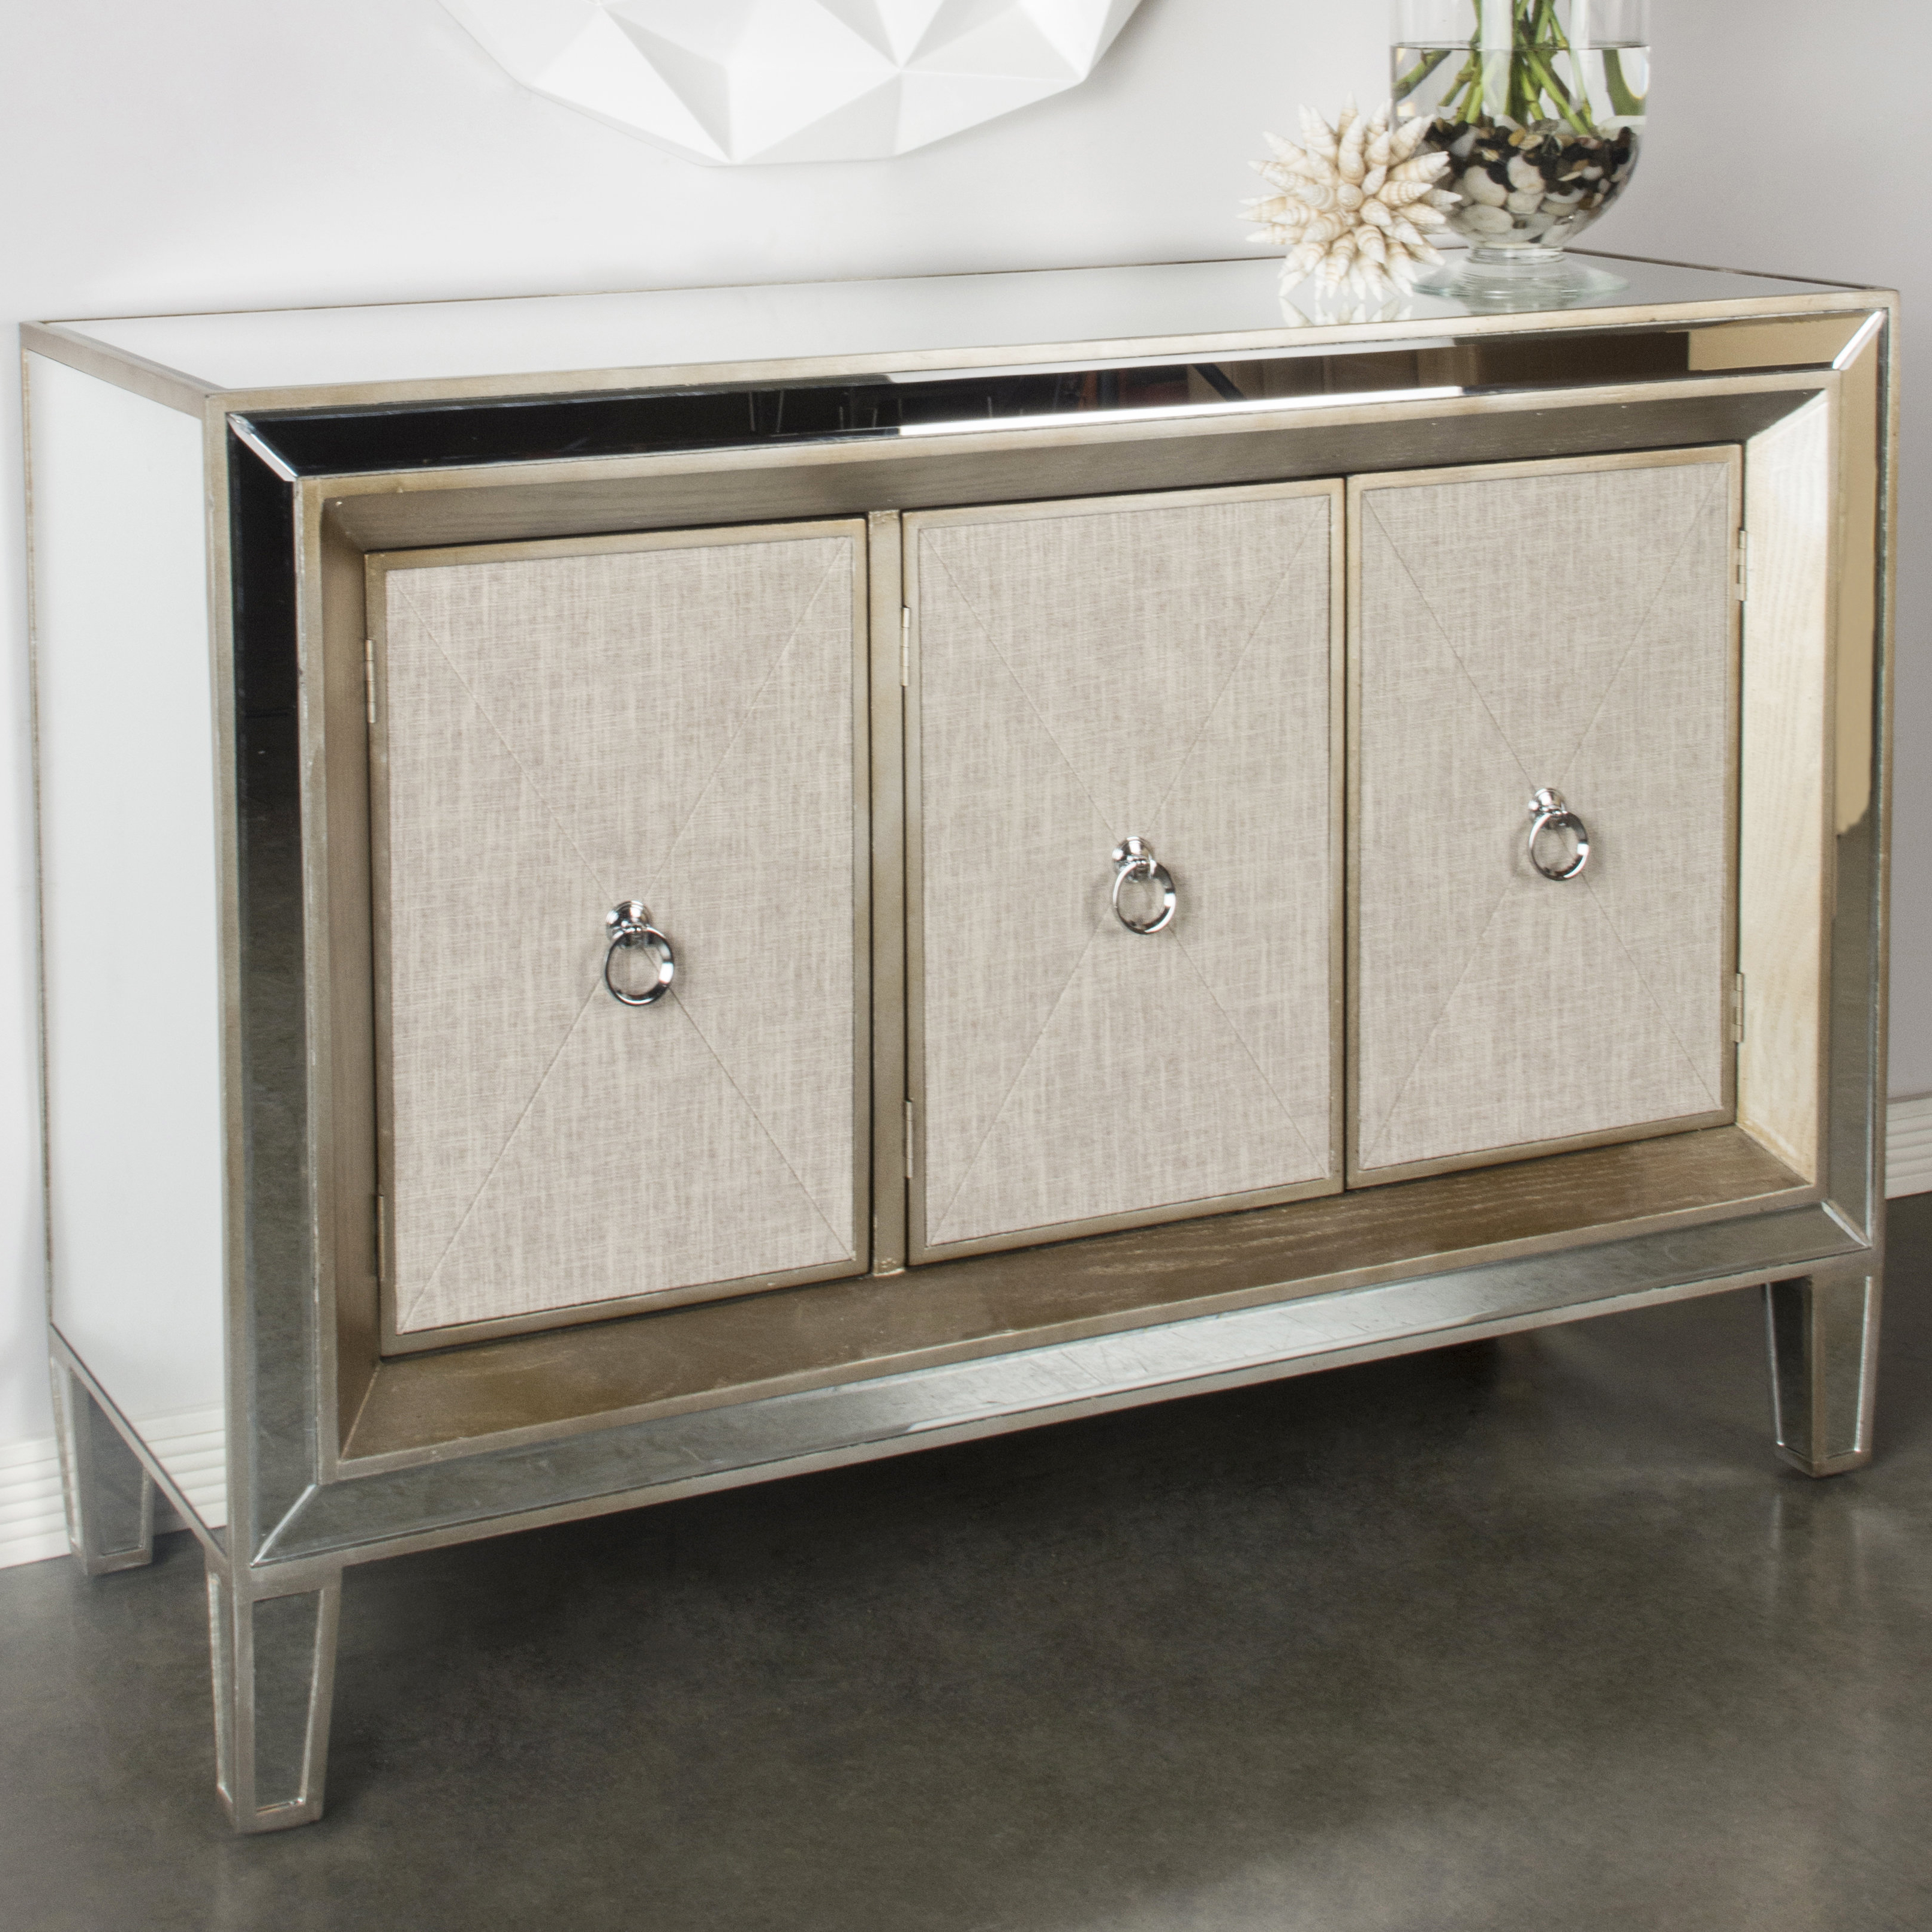 Gold & Silver Sideboards & Buffets You'll Love In 2019 | Wayfair With Regard To Wattisham Sideboards (Gallery 4 of 20)